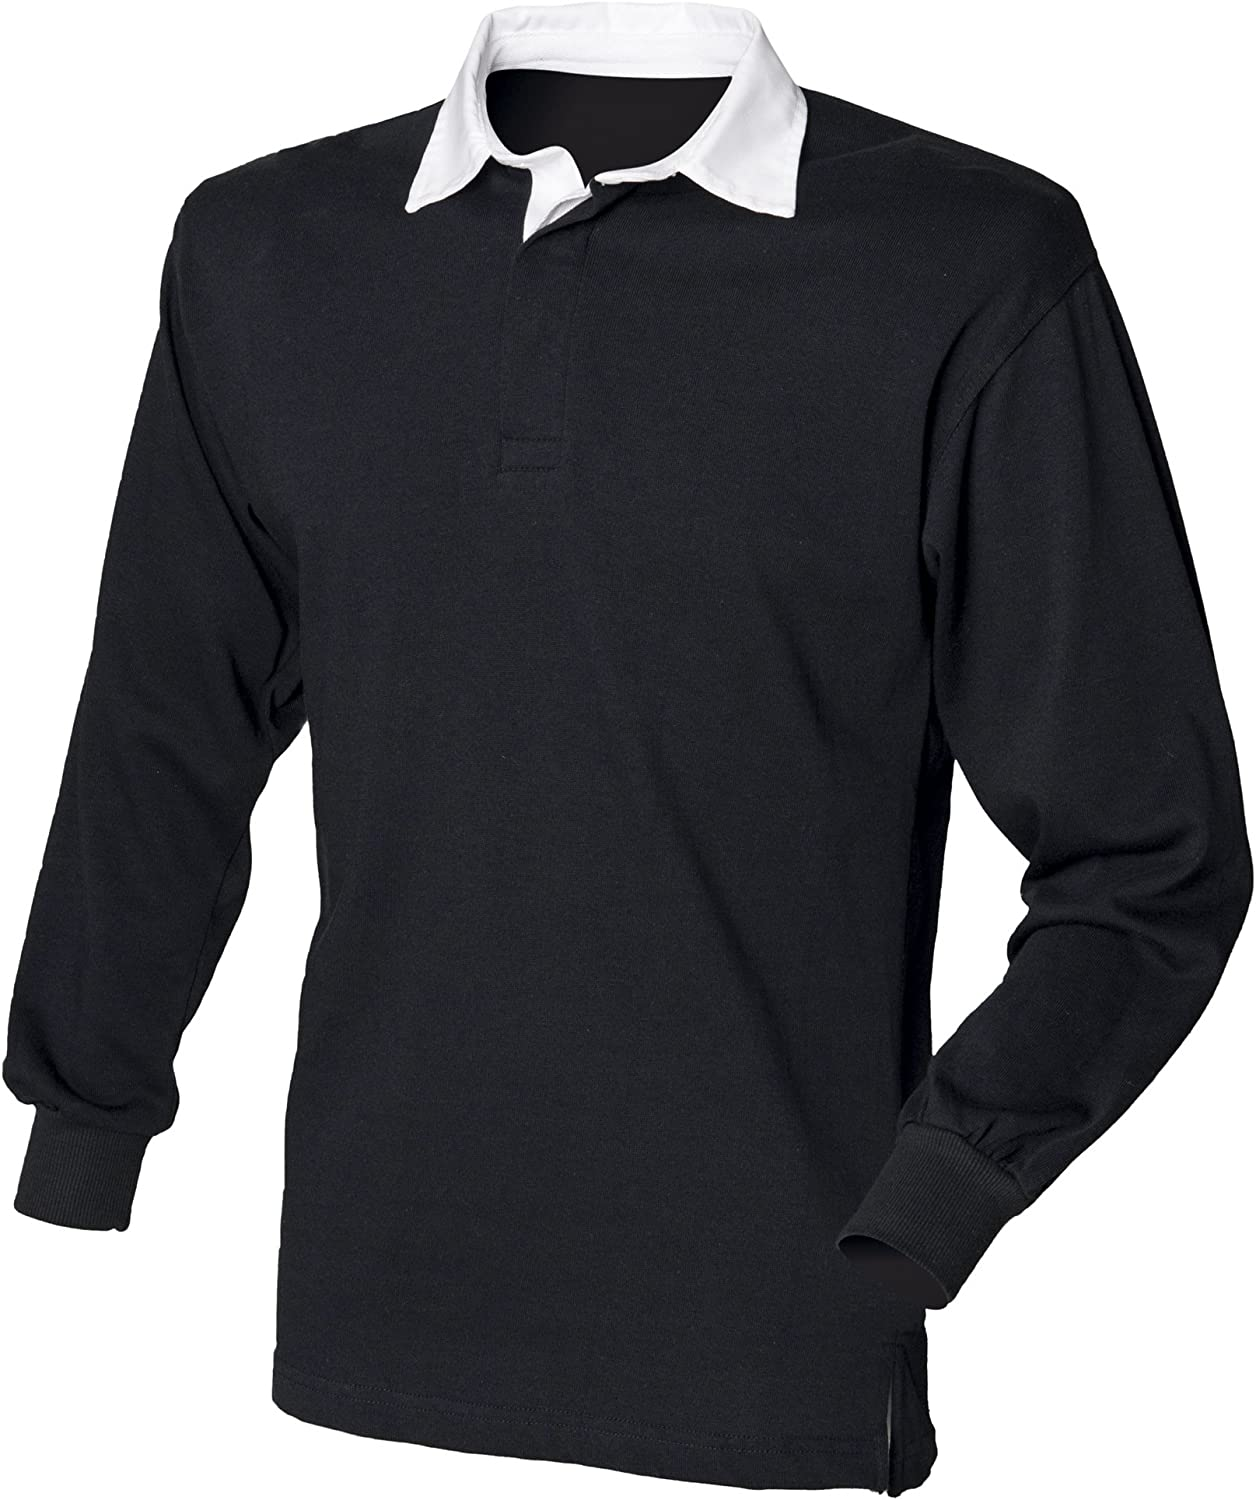 Front Row Long Sleeve Plain Rugby Shirt